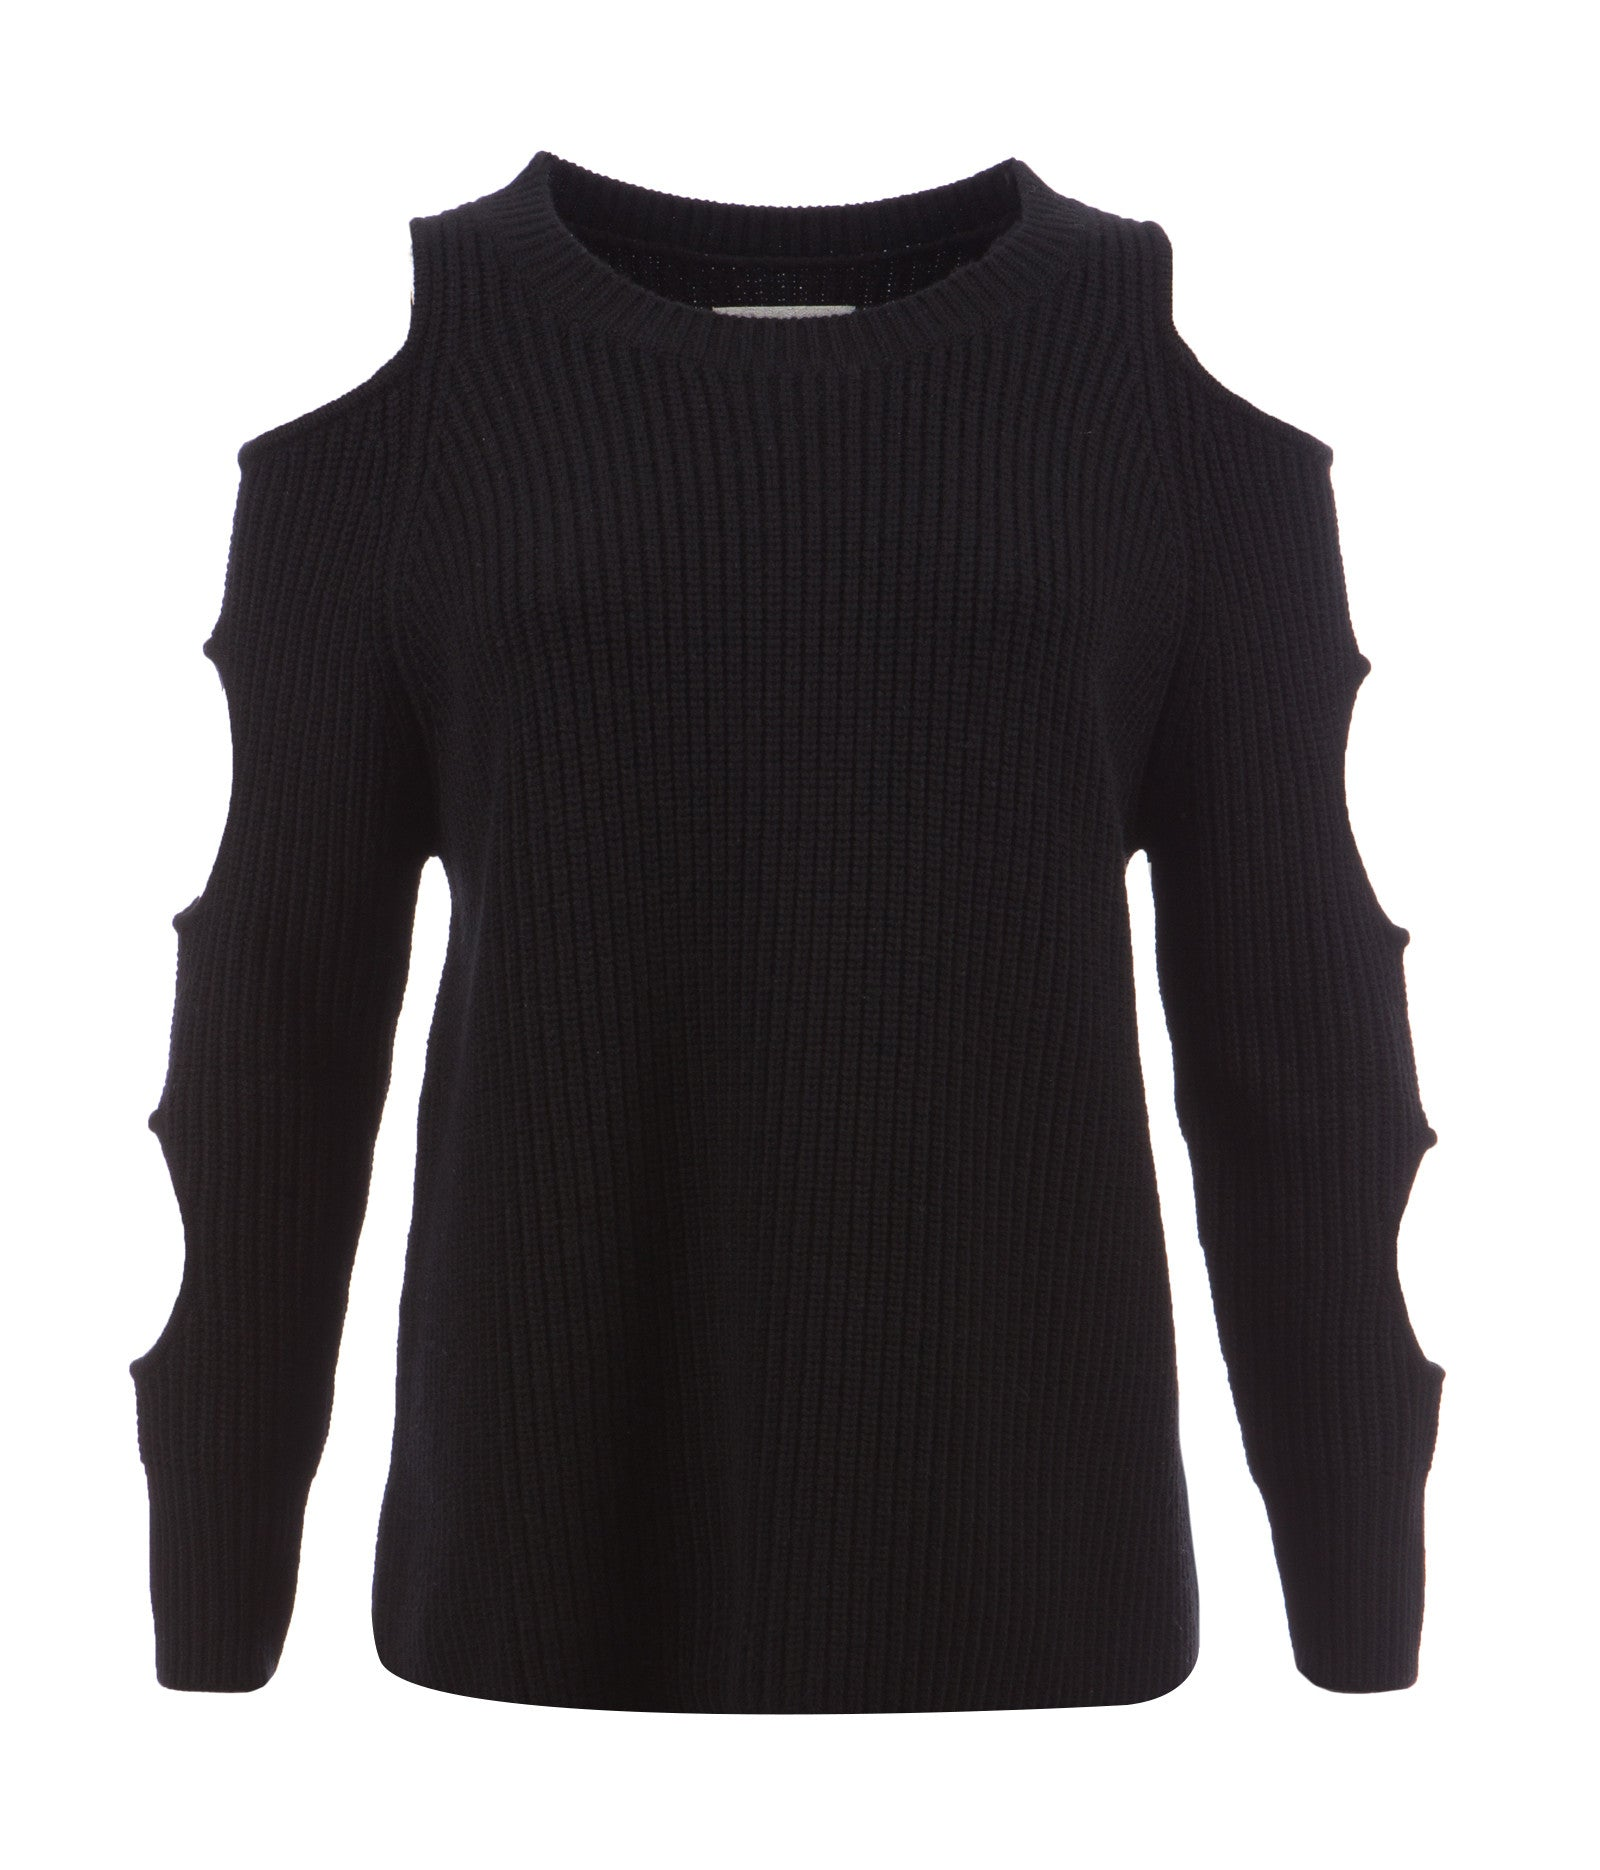 Black Ribbed Cashmere blend women